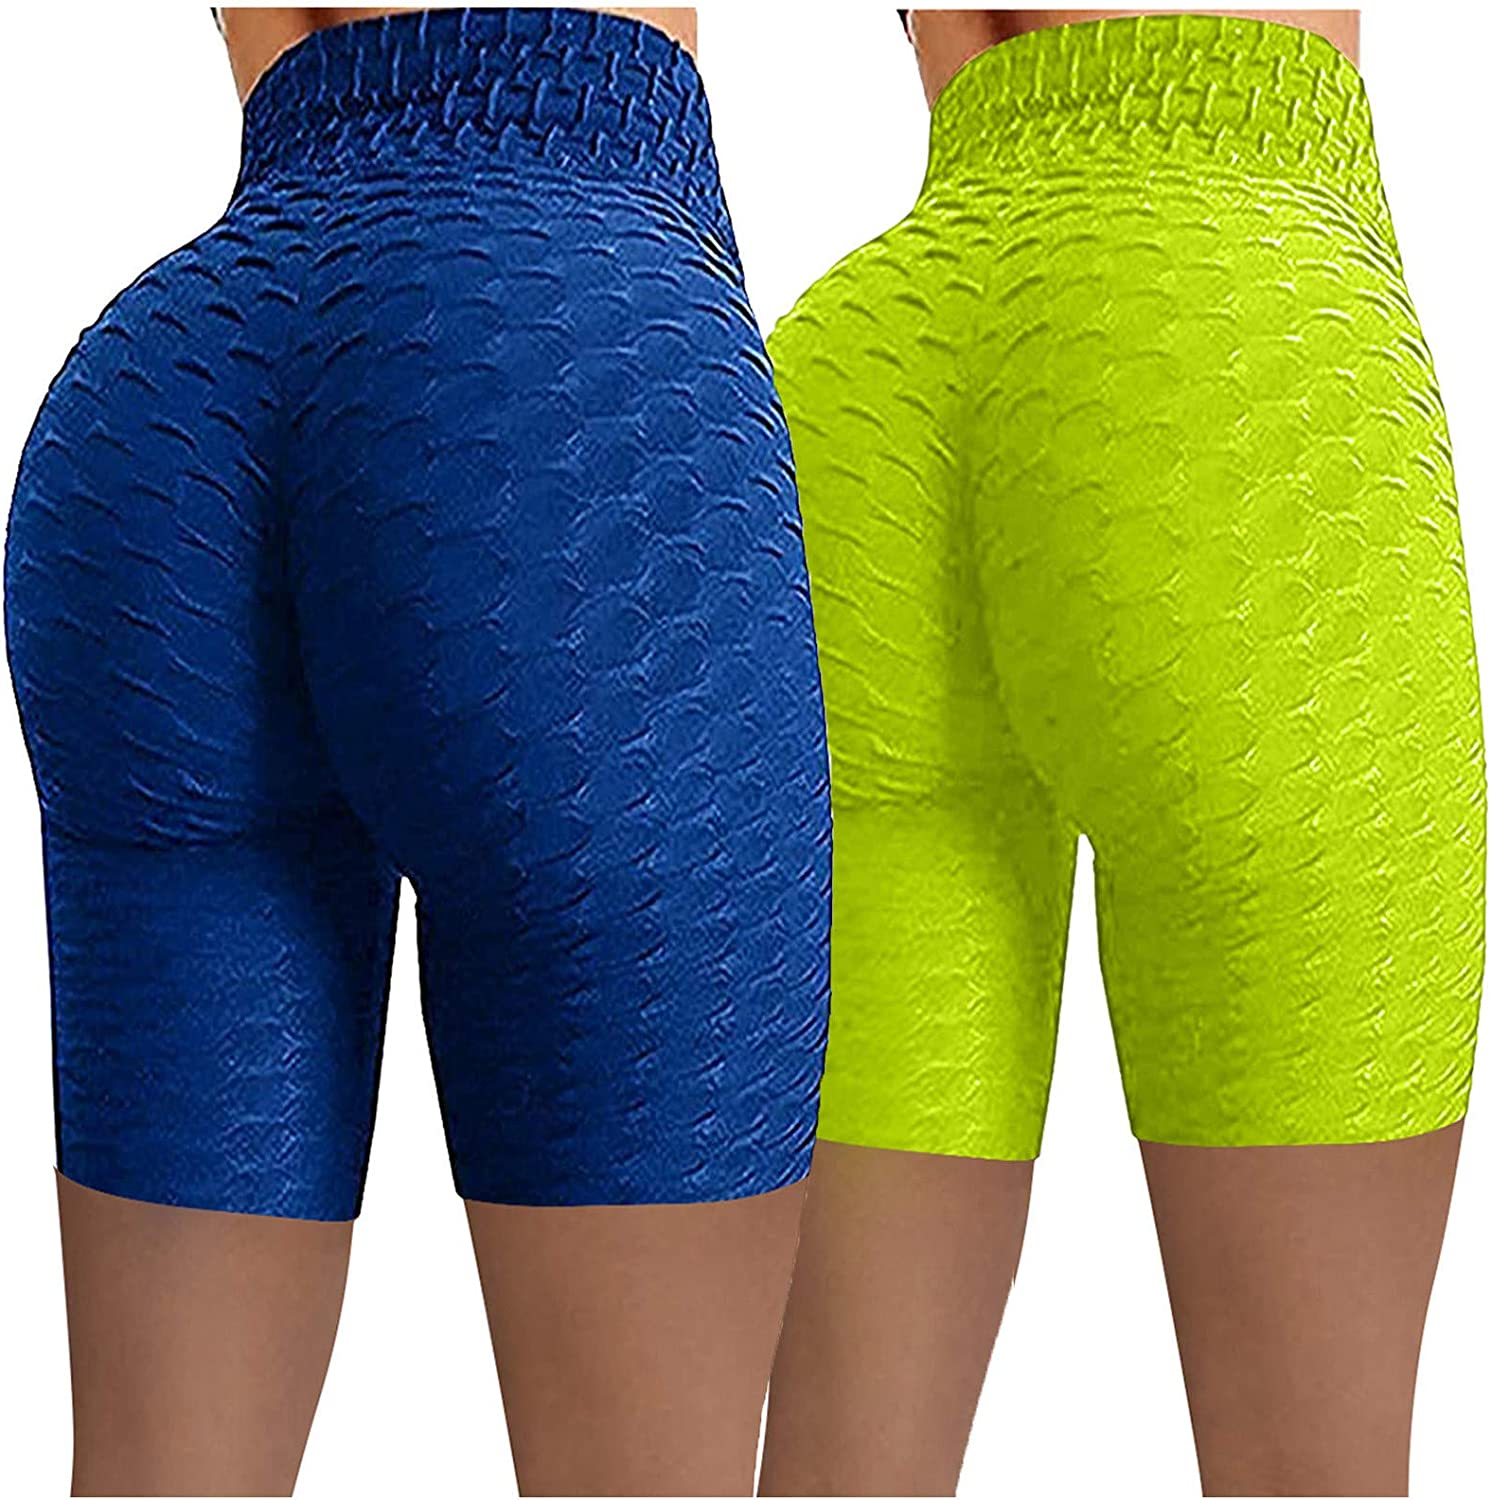 2 Pack Yoga Shorts for Women,Butt Lifting Yoga Shorts for Women Tummy Control Leggings Textured Ruched Running Shorts